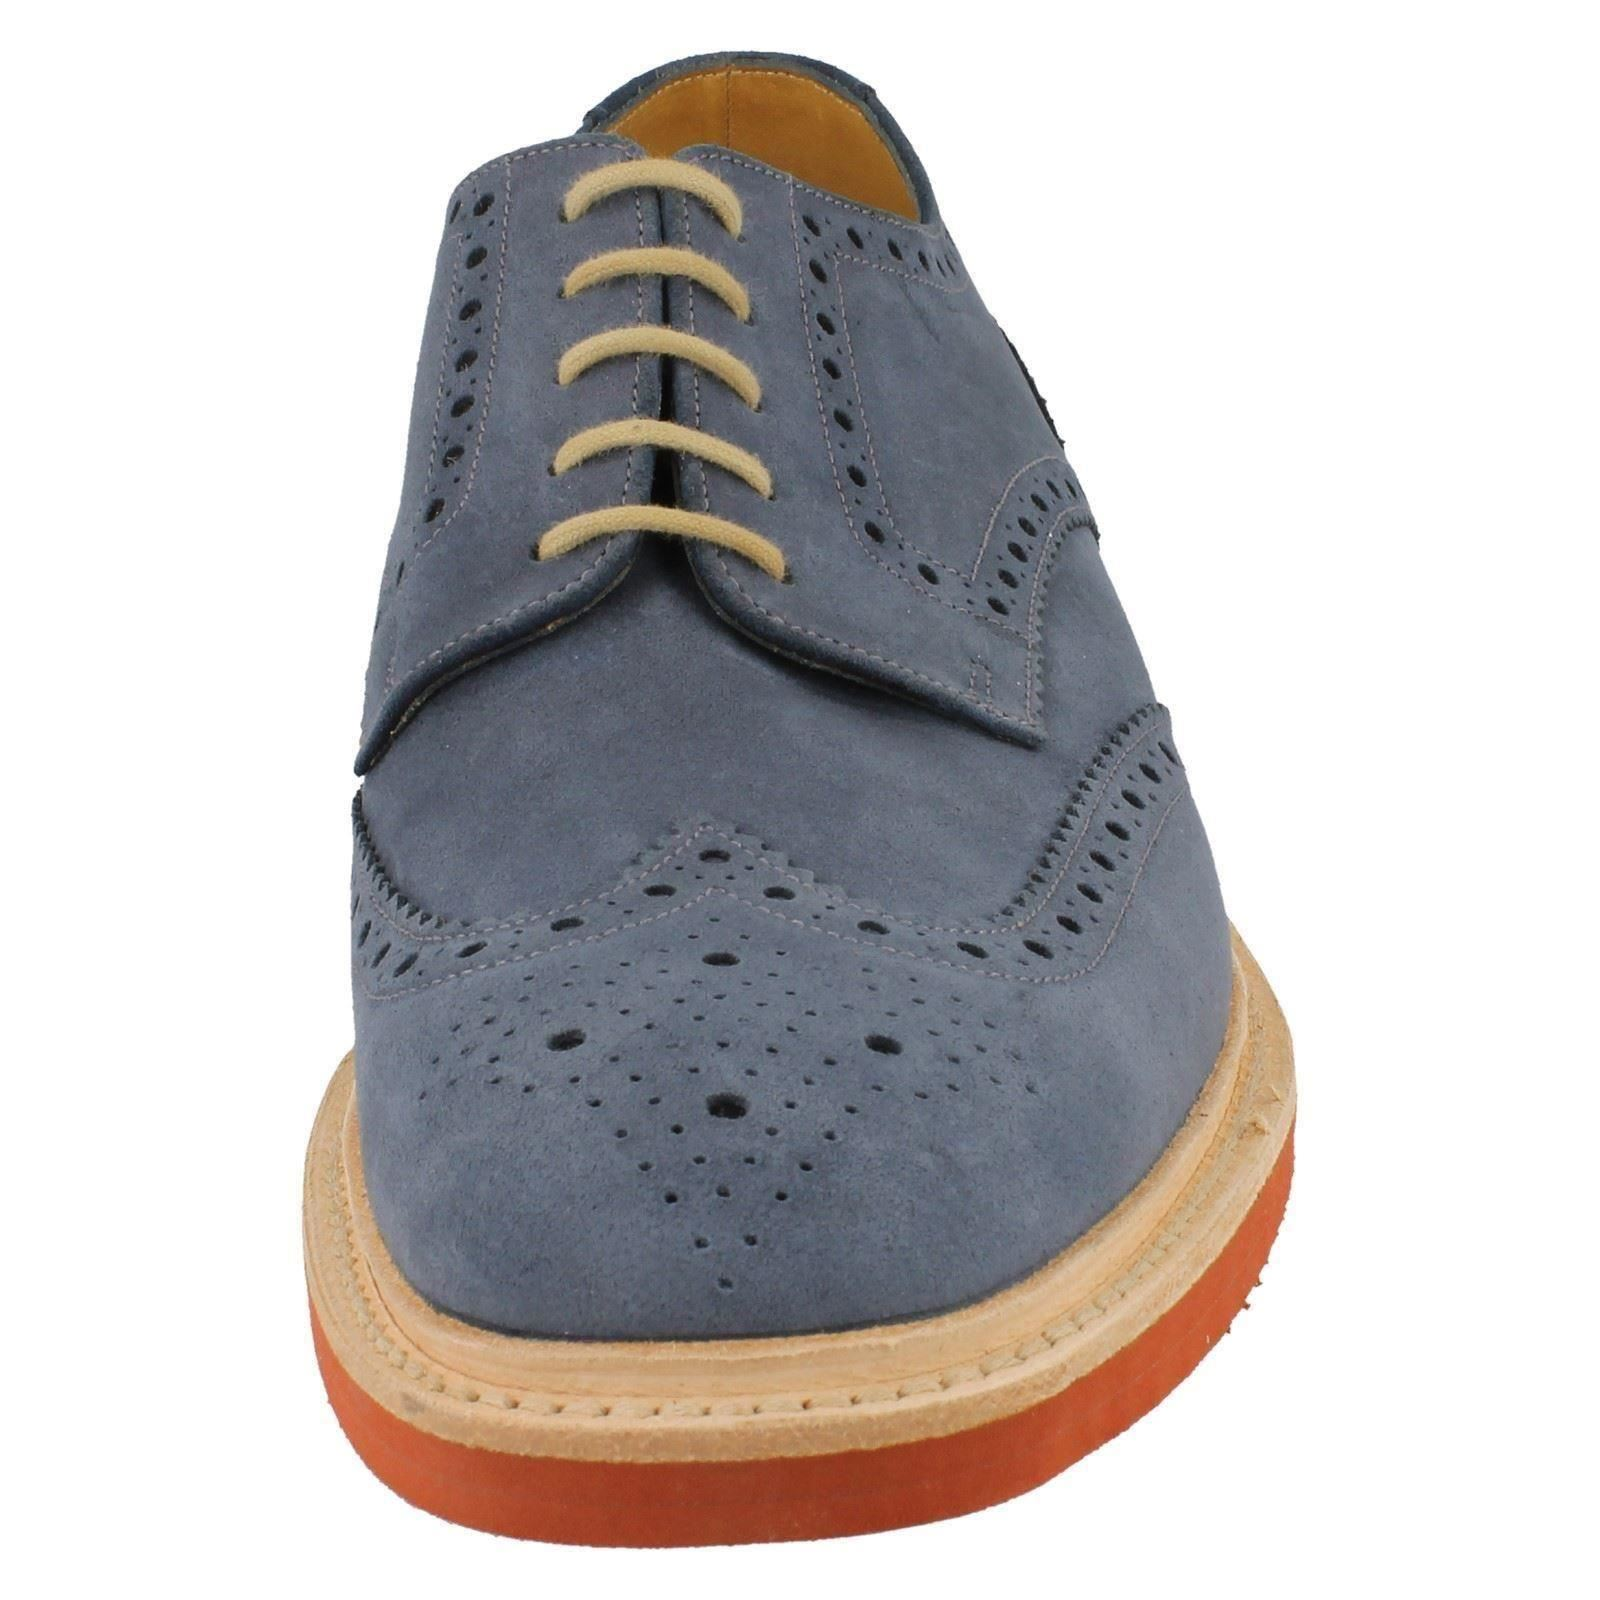 Mens Loake Loake Loake Casual Shoes Fitting F - Logan 199241